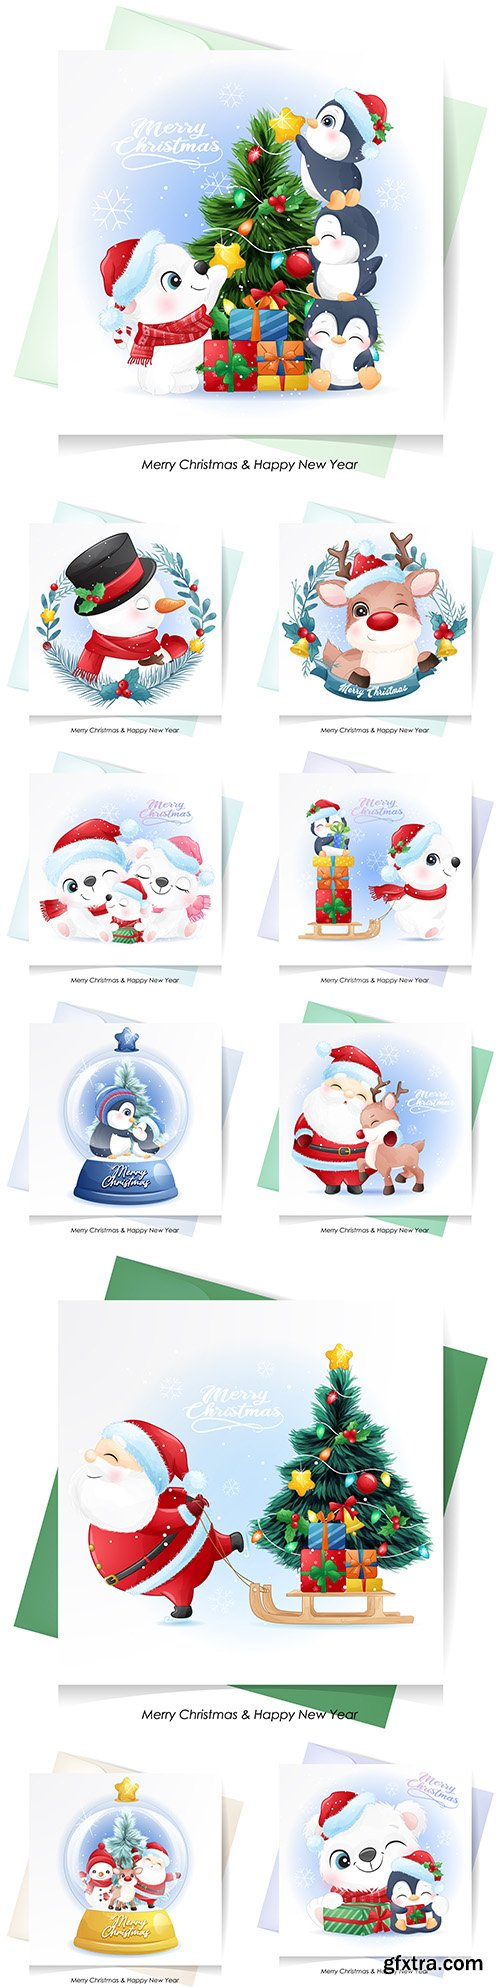 Cute Santa Claus, deer and snowman for Christmas with watercolor card